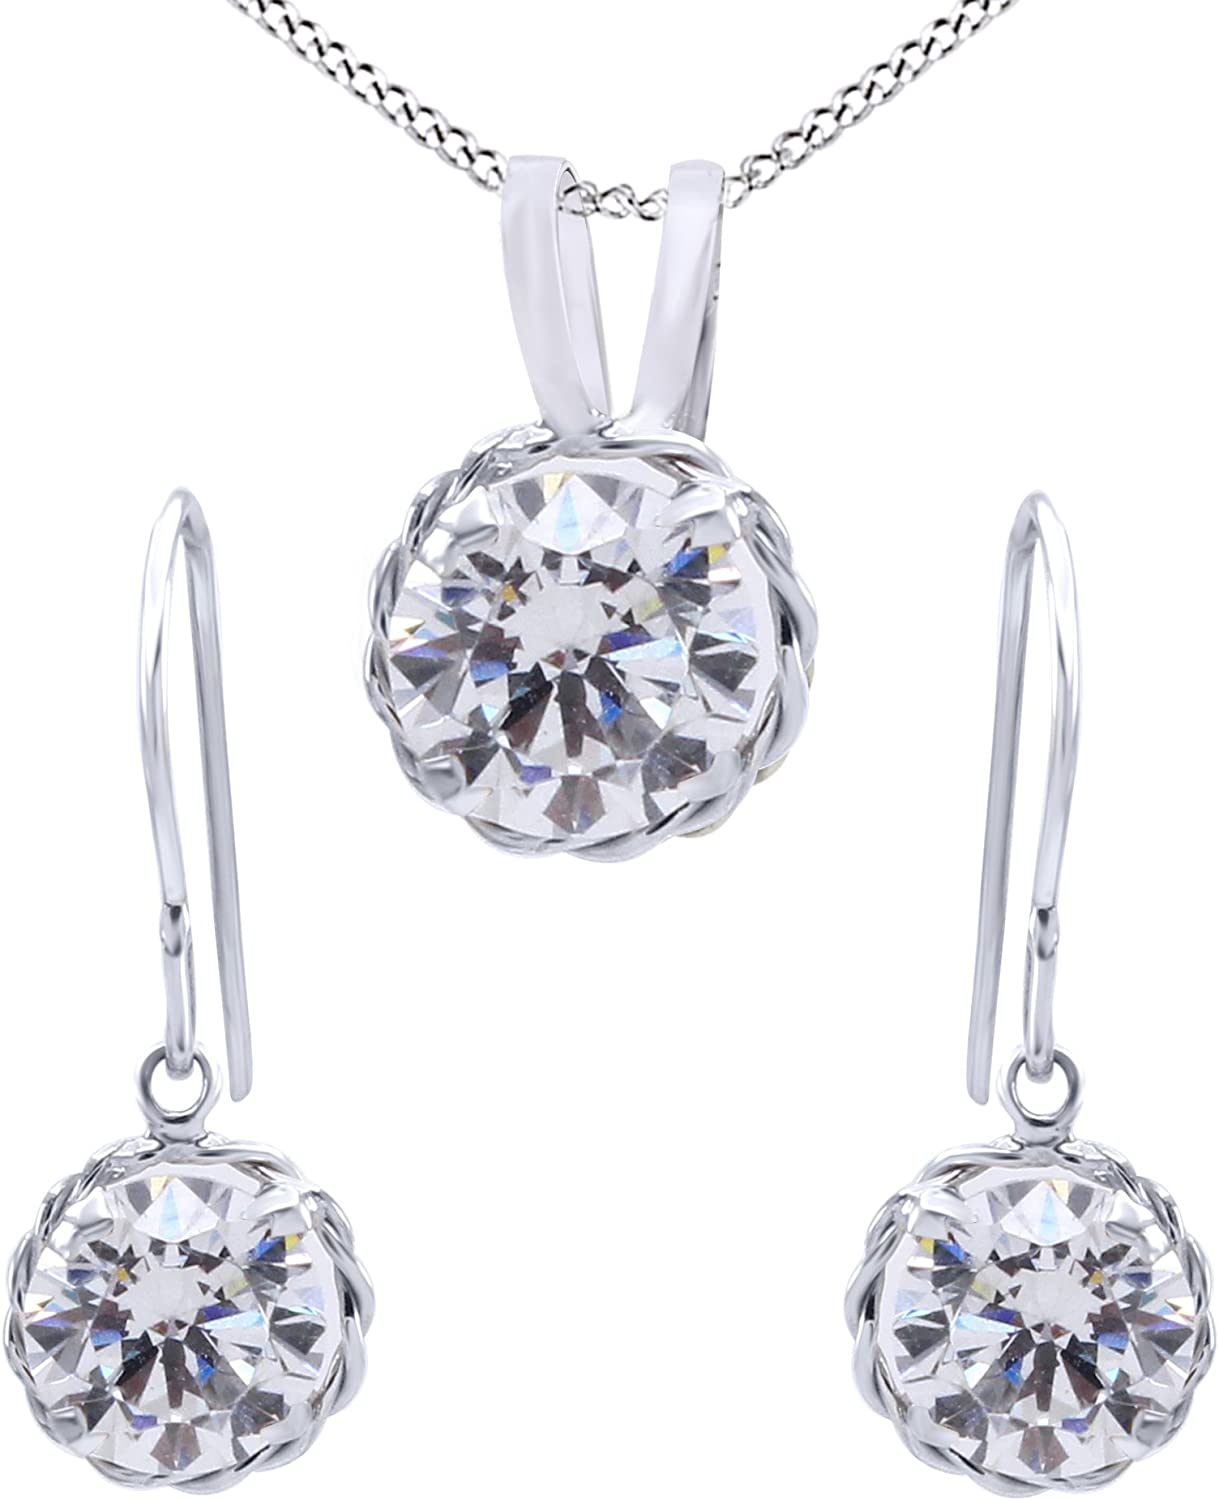 Round Cut White Cubic Zirconia Pendant Necklace & Earrings Jewelry Set in 14k Solid Gold (3.00 cttw)